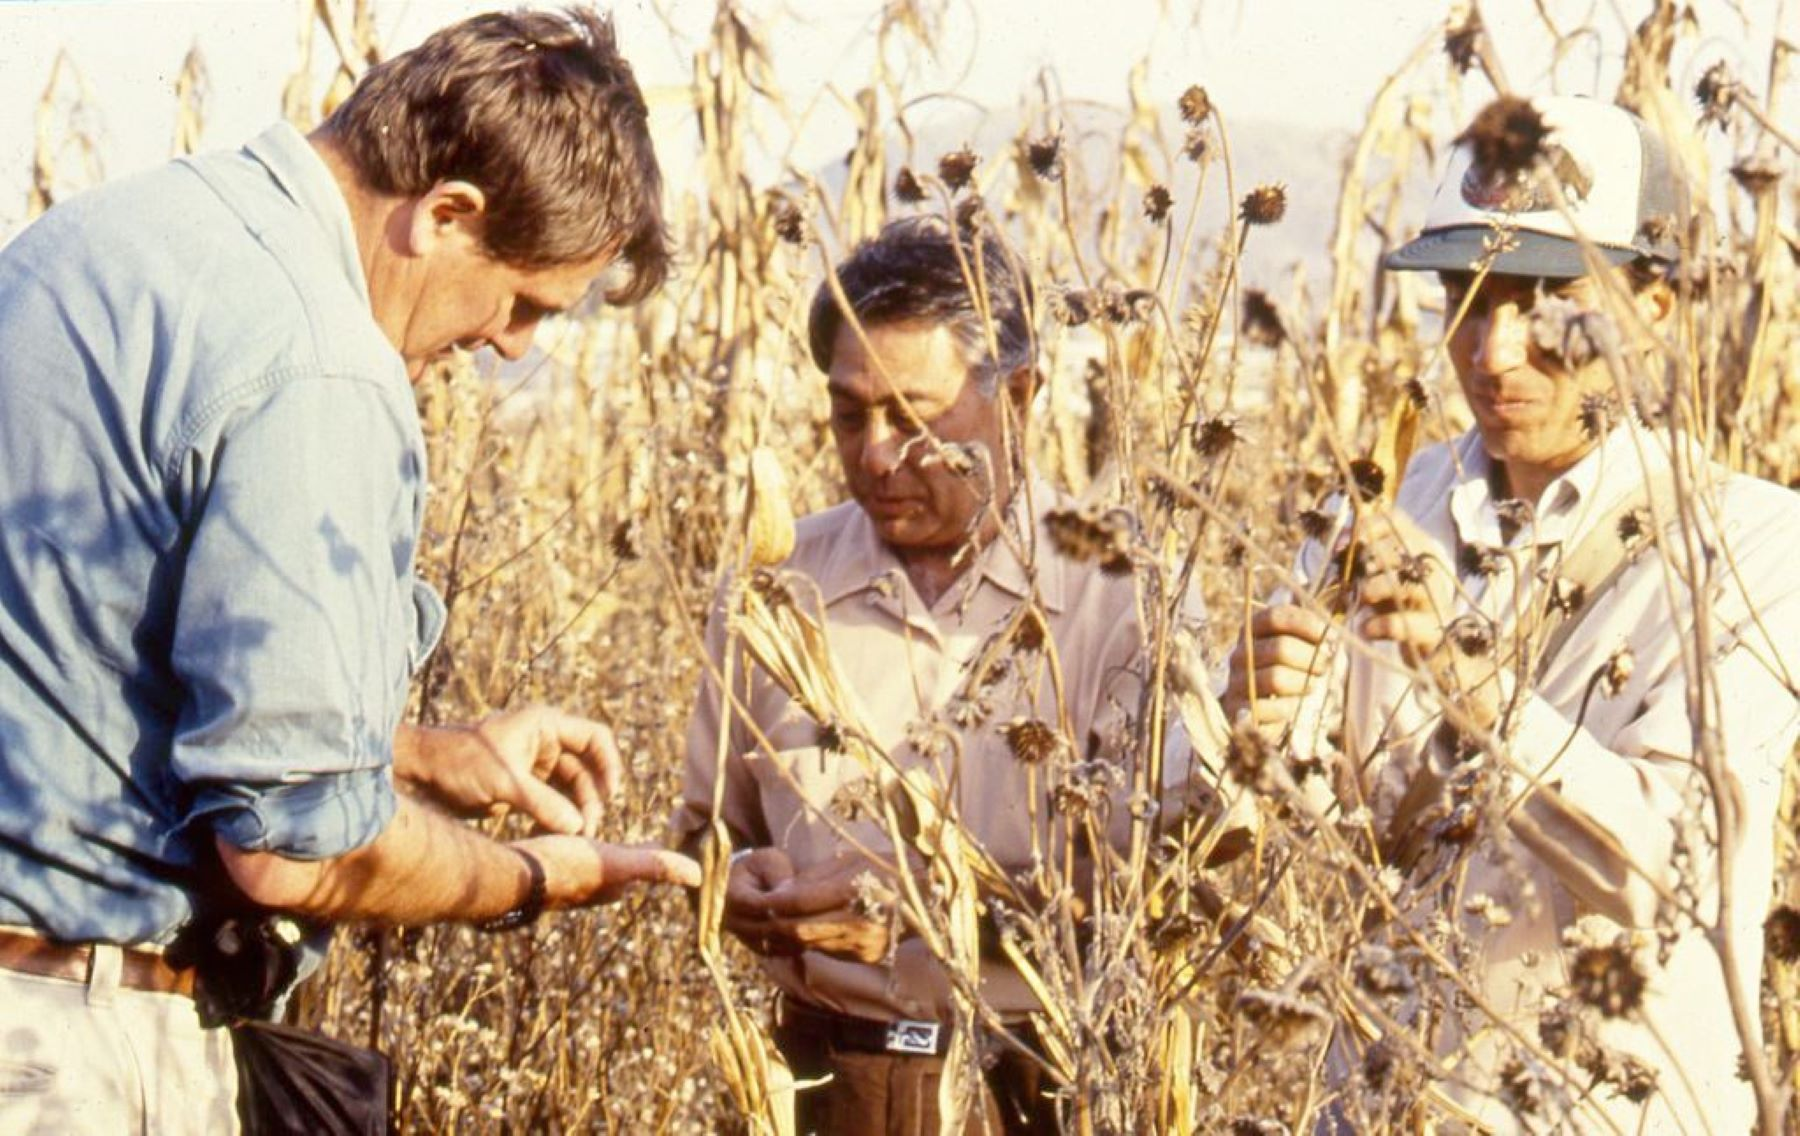 (From left to right) Garrison Wilkes, Angel Kato and Jesus Sanchez, study a teosinte population in Los Reyes, near Texcoco, Mexico, in 1992. (Photo: Mike Listman/CIMMYT)